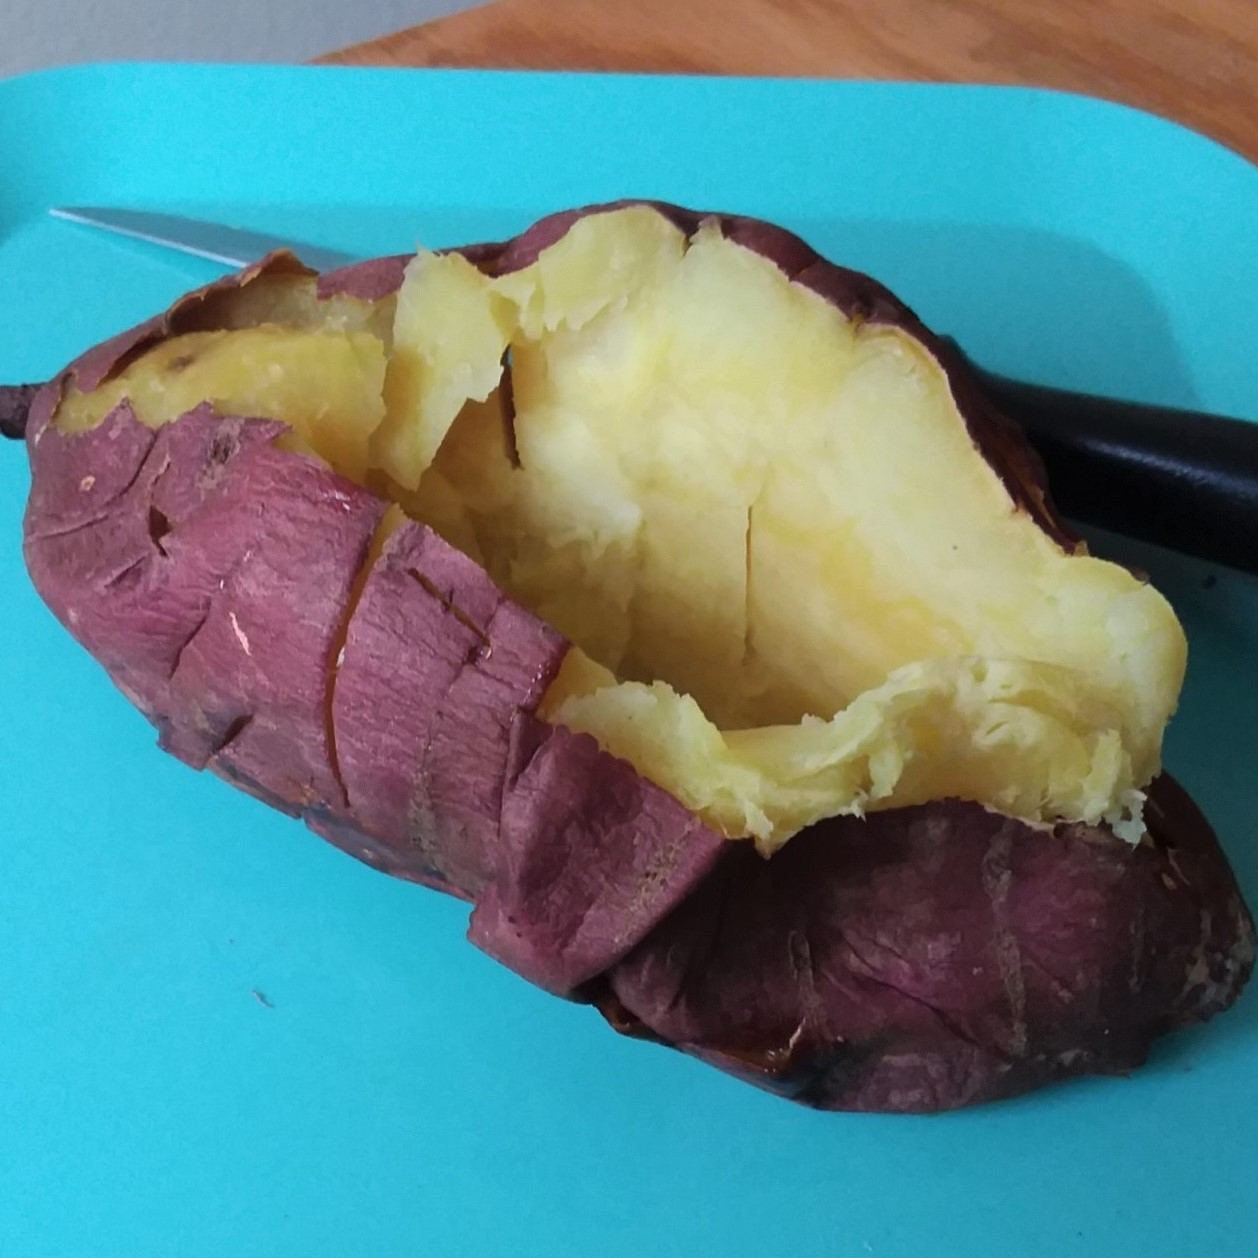 Japanese Yam On A Plate. Purple Outside, Yellow Inside